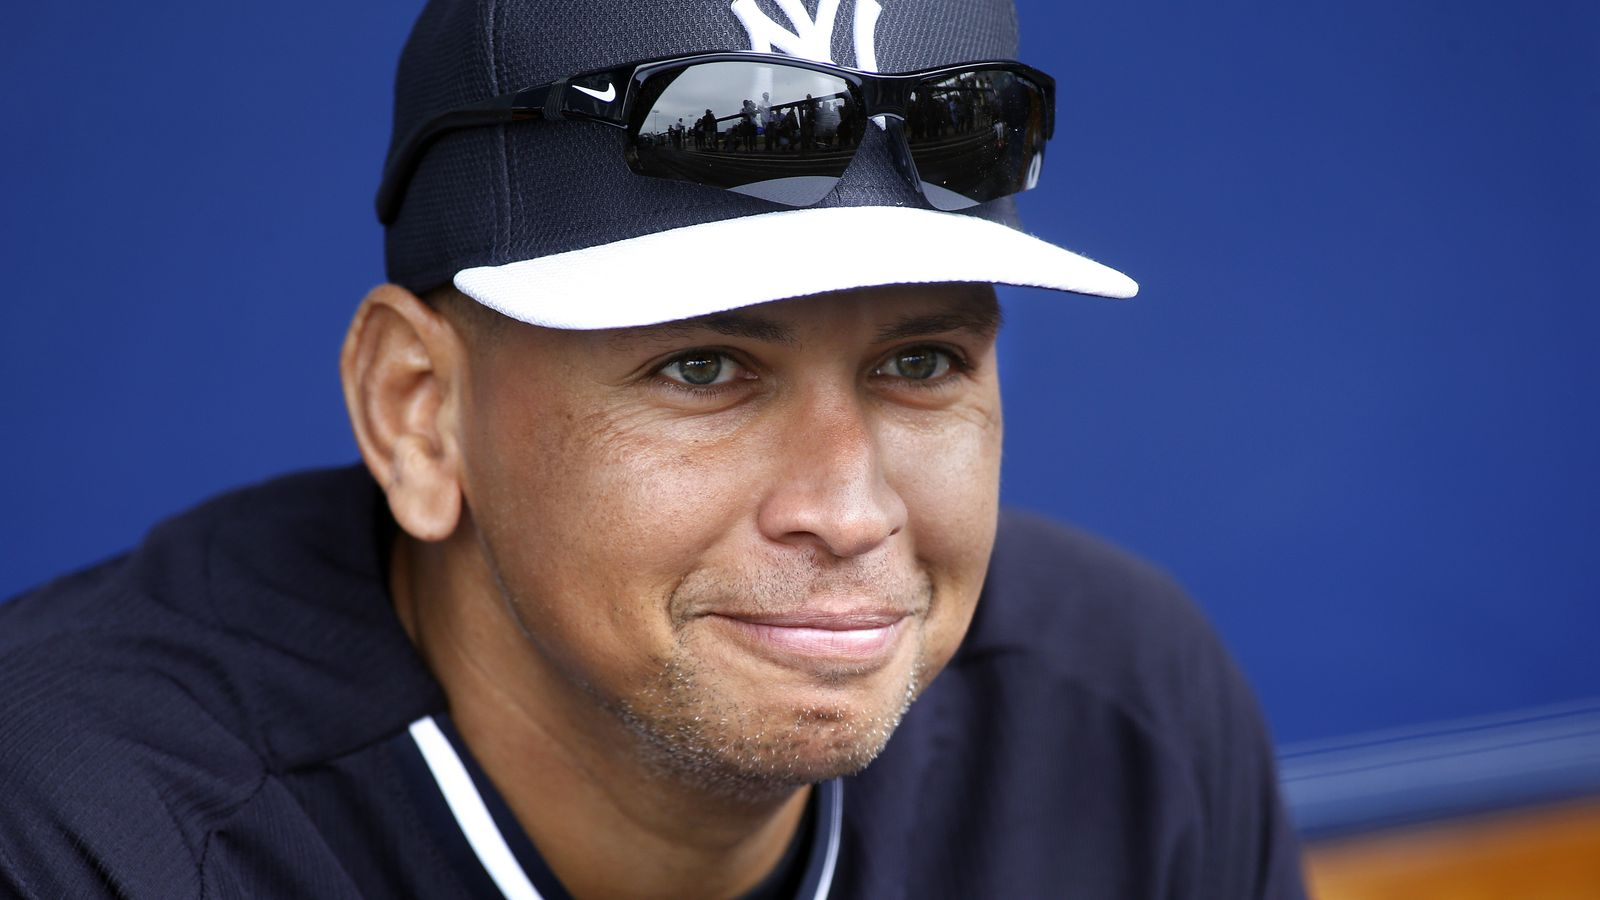 Alex Rodriguez aka ARod was born on July 27 1975 in New York and spent his childhood in the Dominican Republic and Miami He is known for his